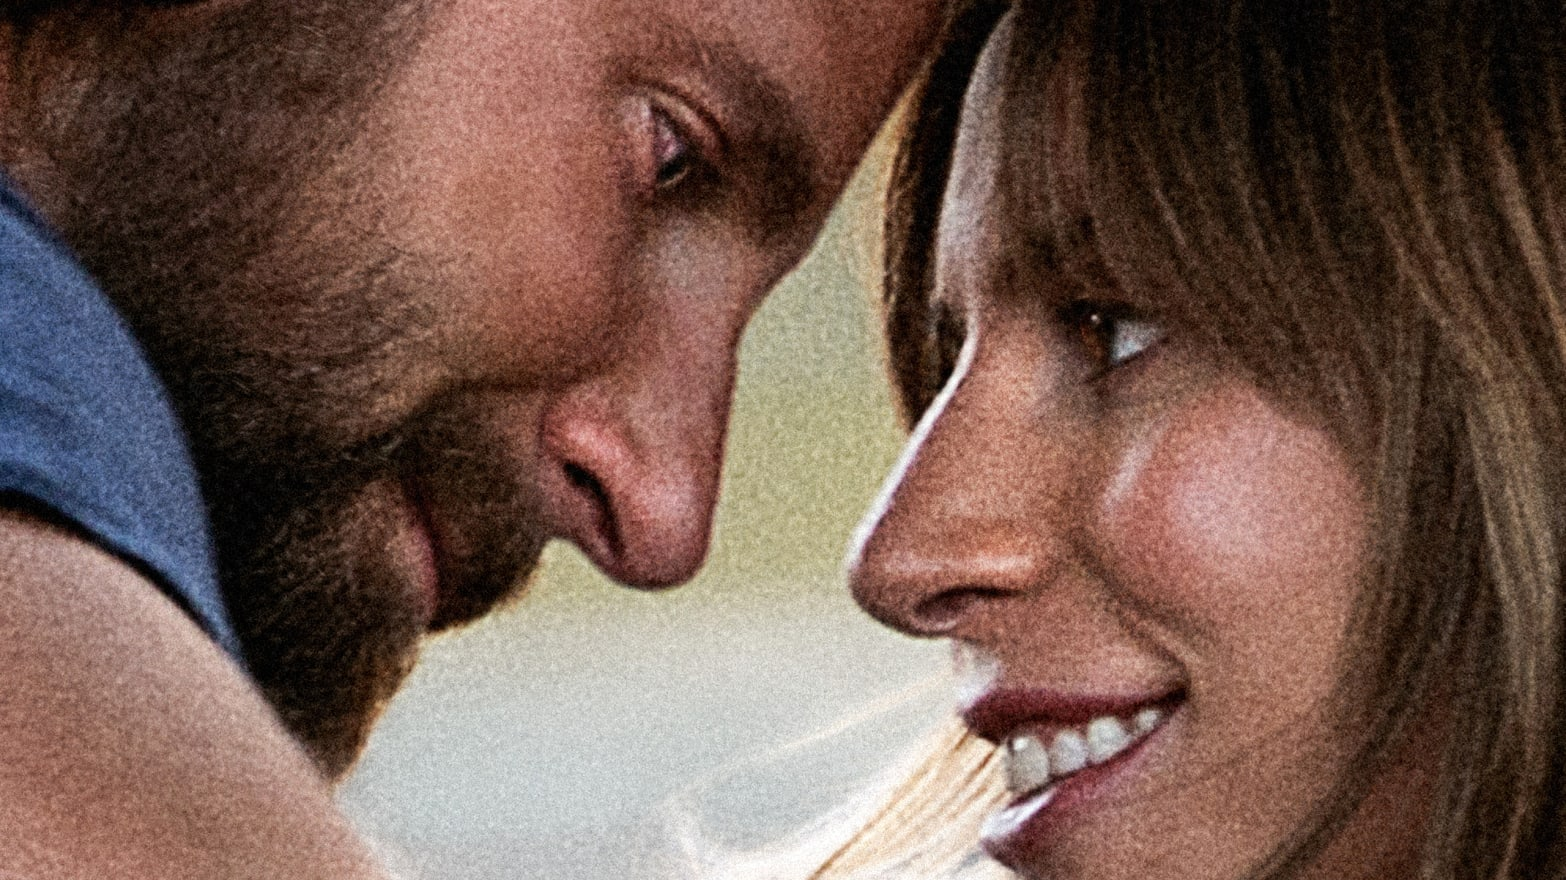 Bradley Cooper's Thing for Lady Gaga's Nose in 'A Star Is Born' Is More  Creepy Than Cute